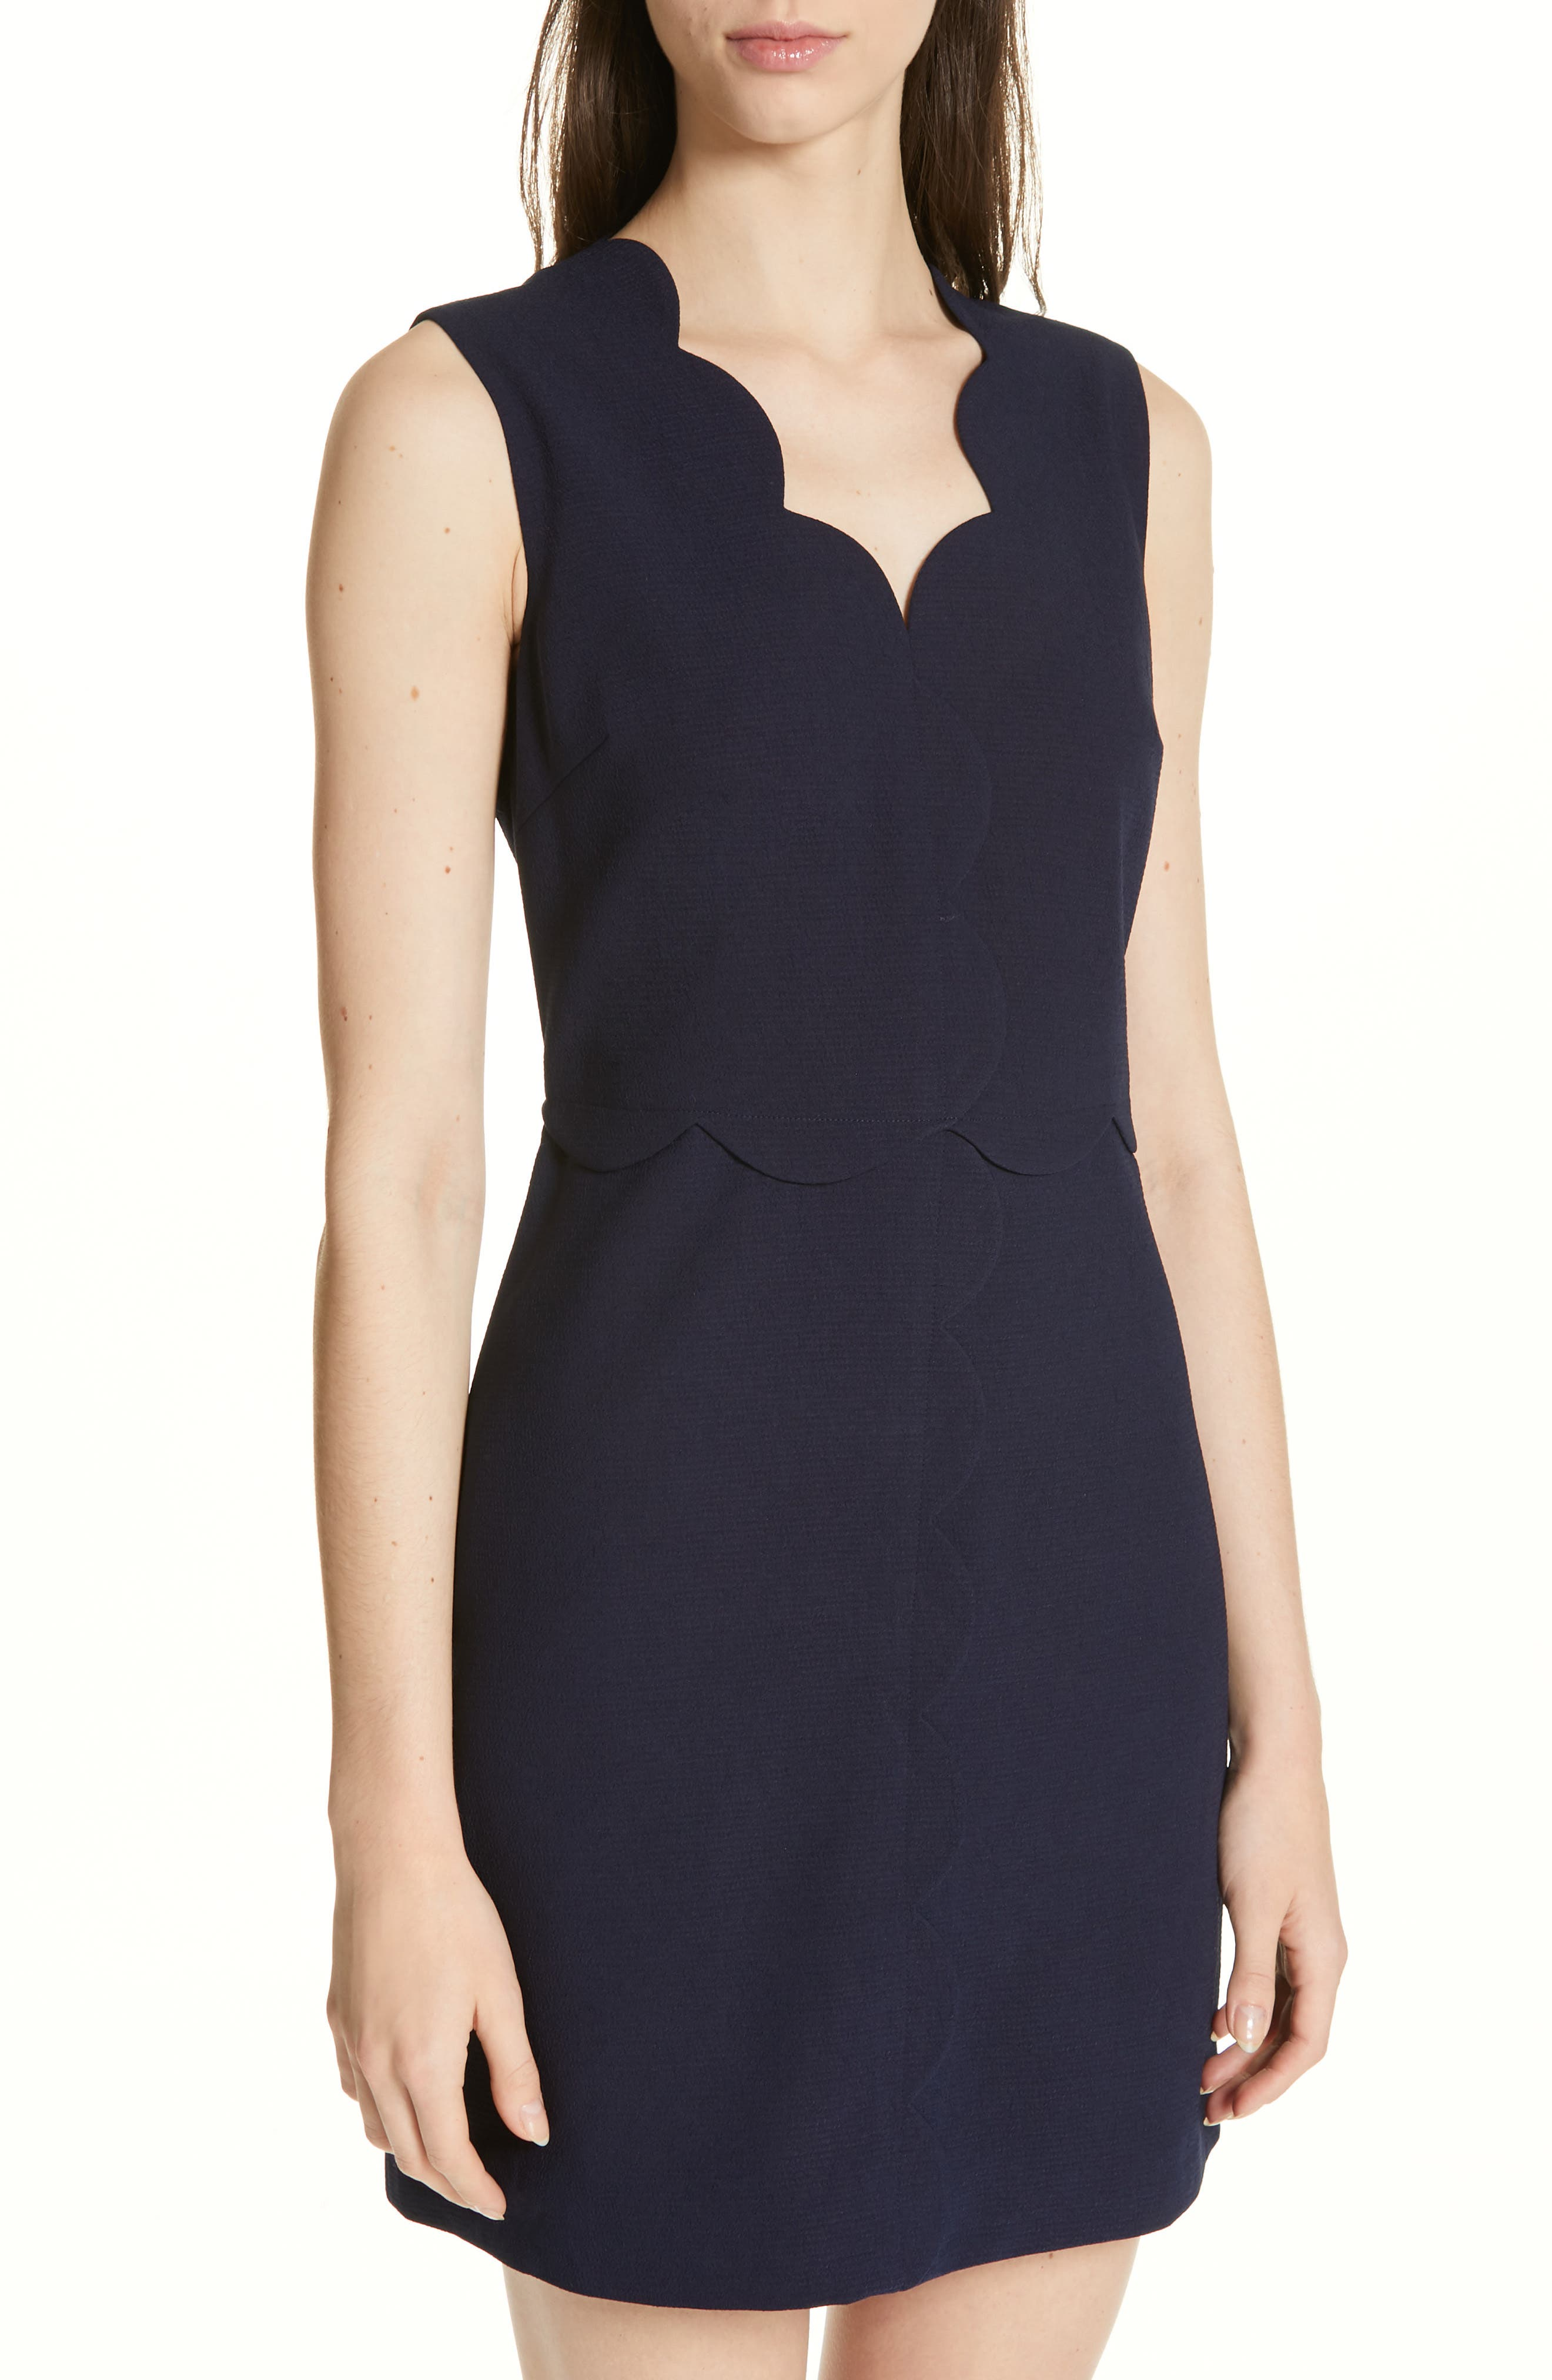 Rubeyed Scallop Edge A-Line Dress,                             Alternate thumbnail 4, color,                             DARK BLUE